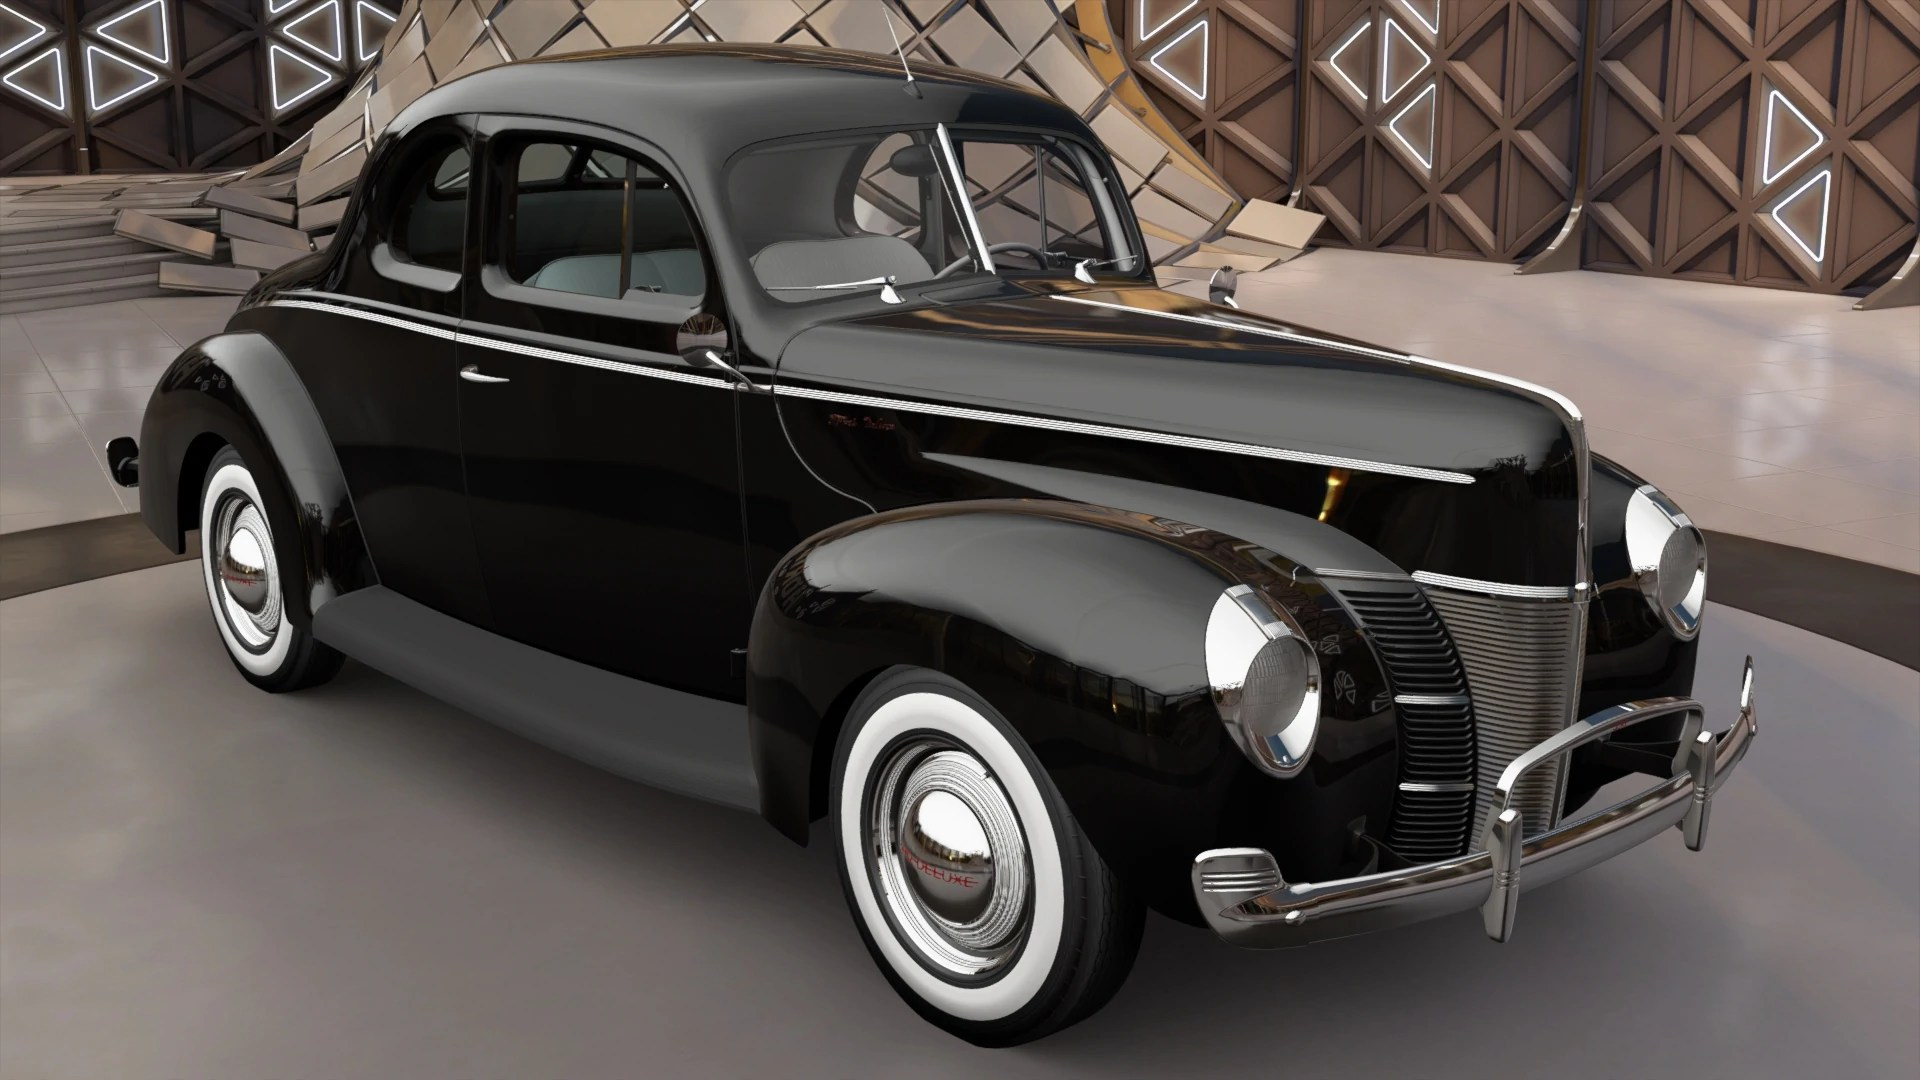 Coupe Ford Ford De Luxe Coupe Forza Motorsport Wiki Fandom Powered By Wikia